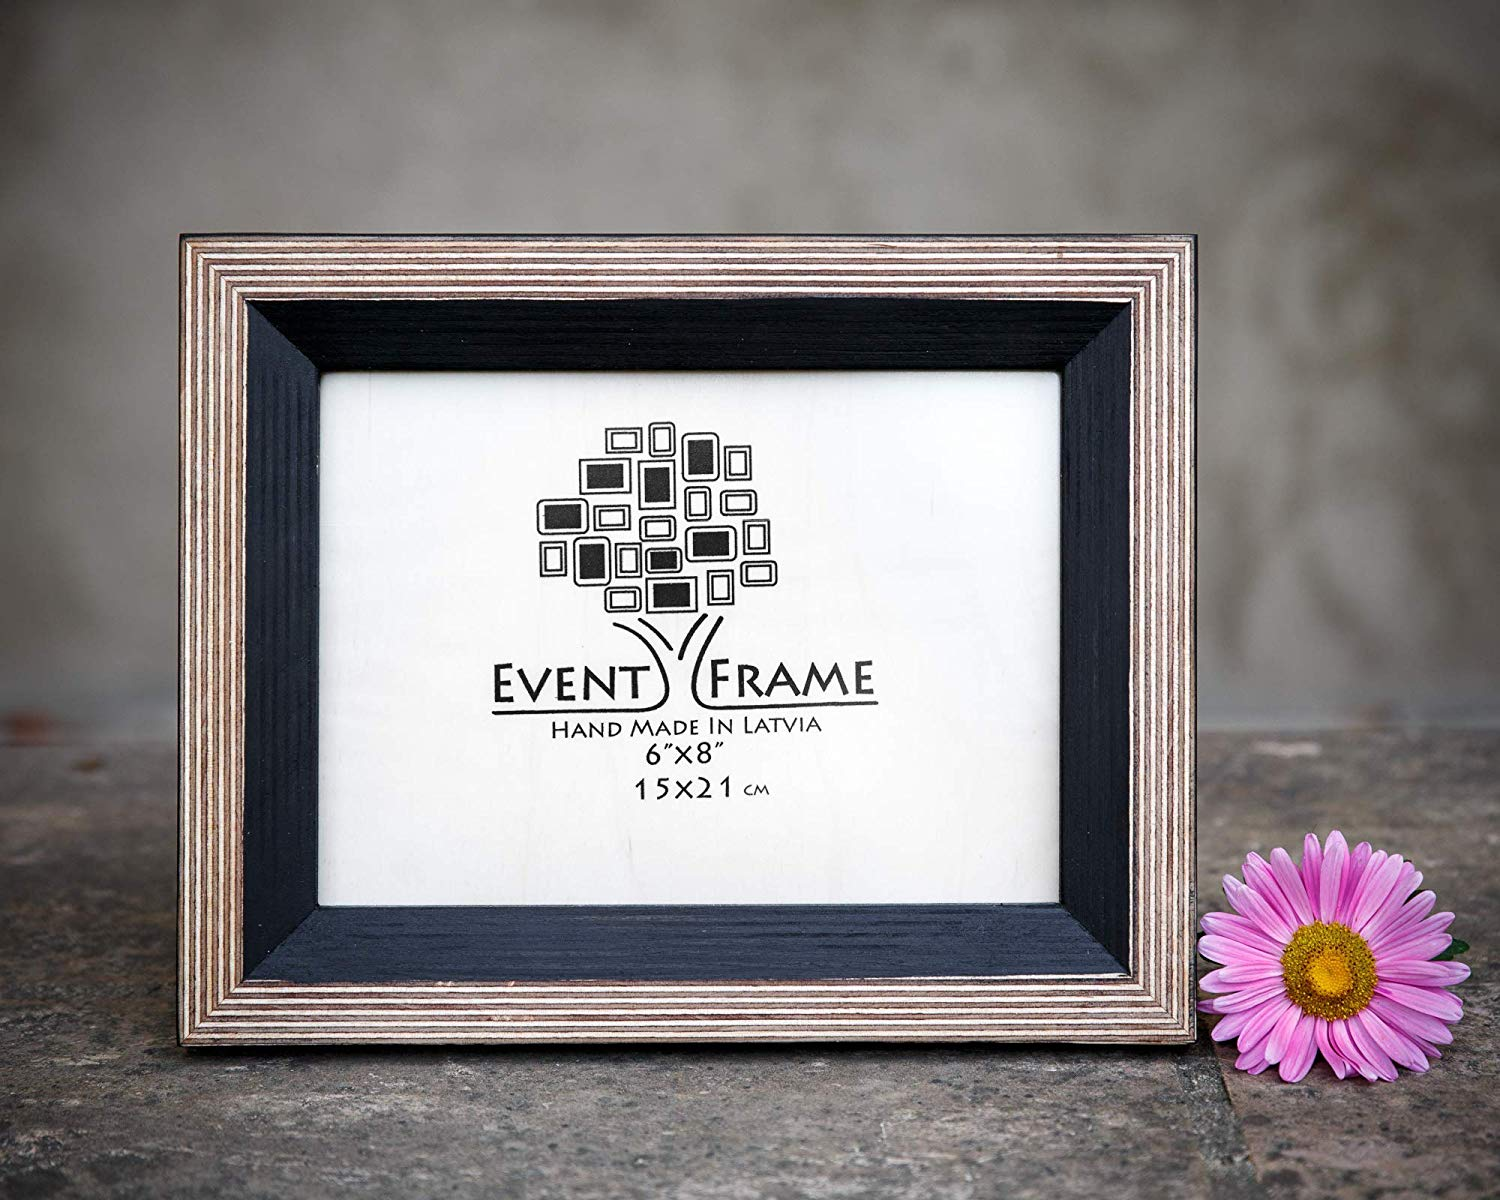 Black Picture Frame, Wood Photo Frame, Rustic frames, CHOOSE SIZES, 4x4 4x6 5x5 5x7 5.5x8.5 6x6 6x8 7x7 7x9 8.5X11 8x8 8x10 10x10 8x12 11X14